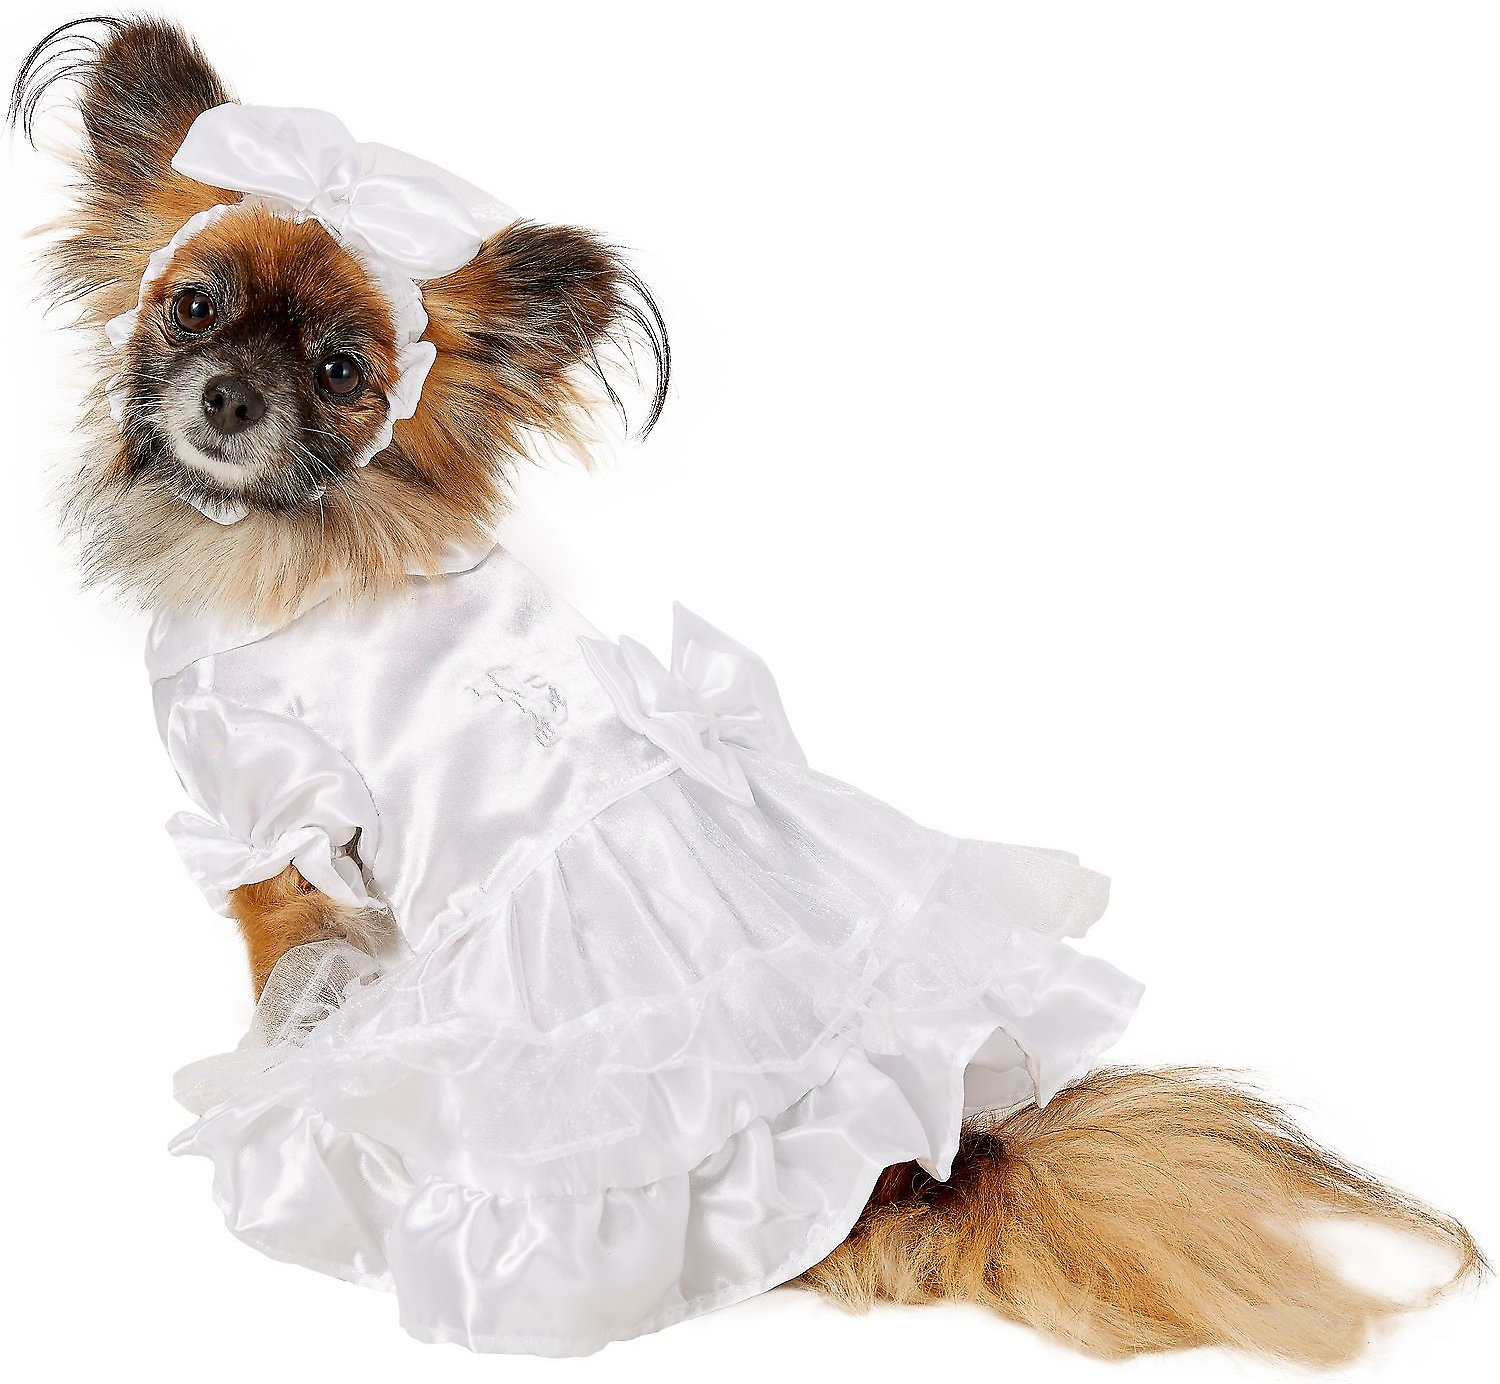 dog in chewy.com wedding dress